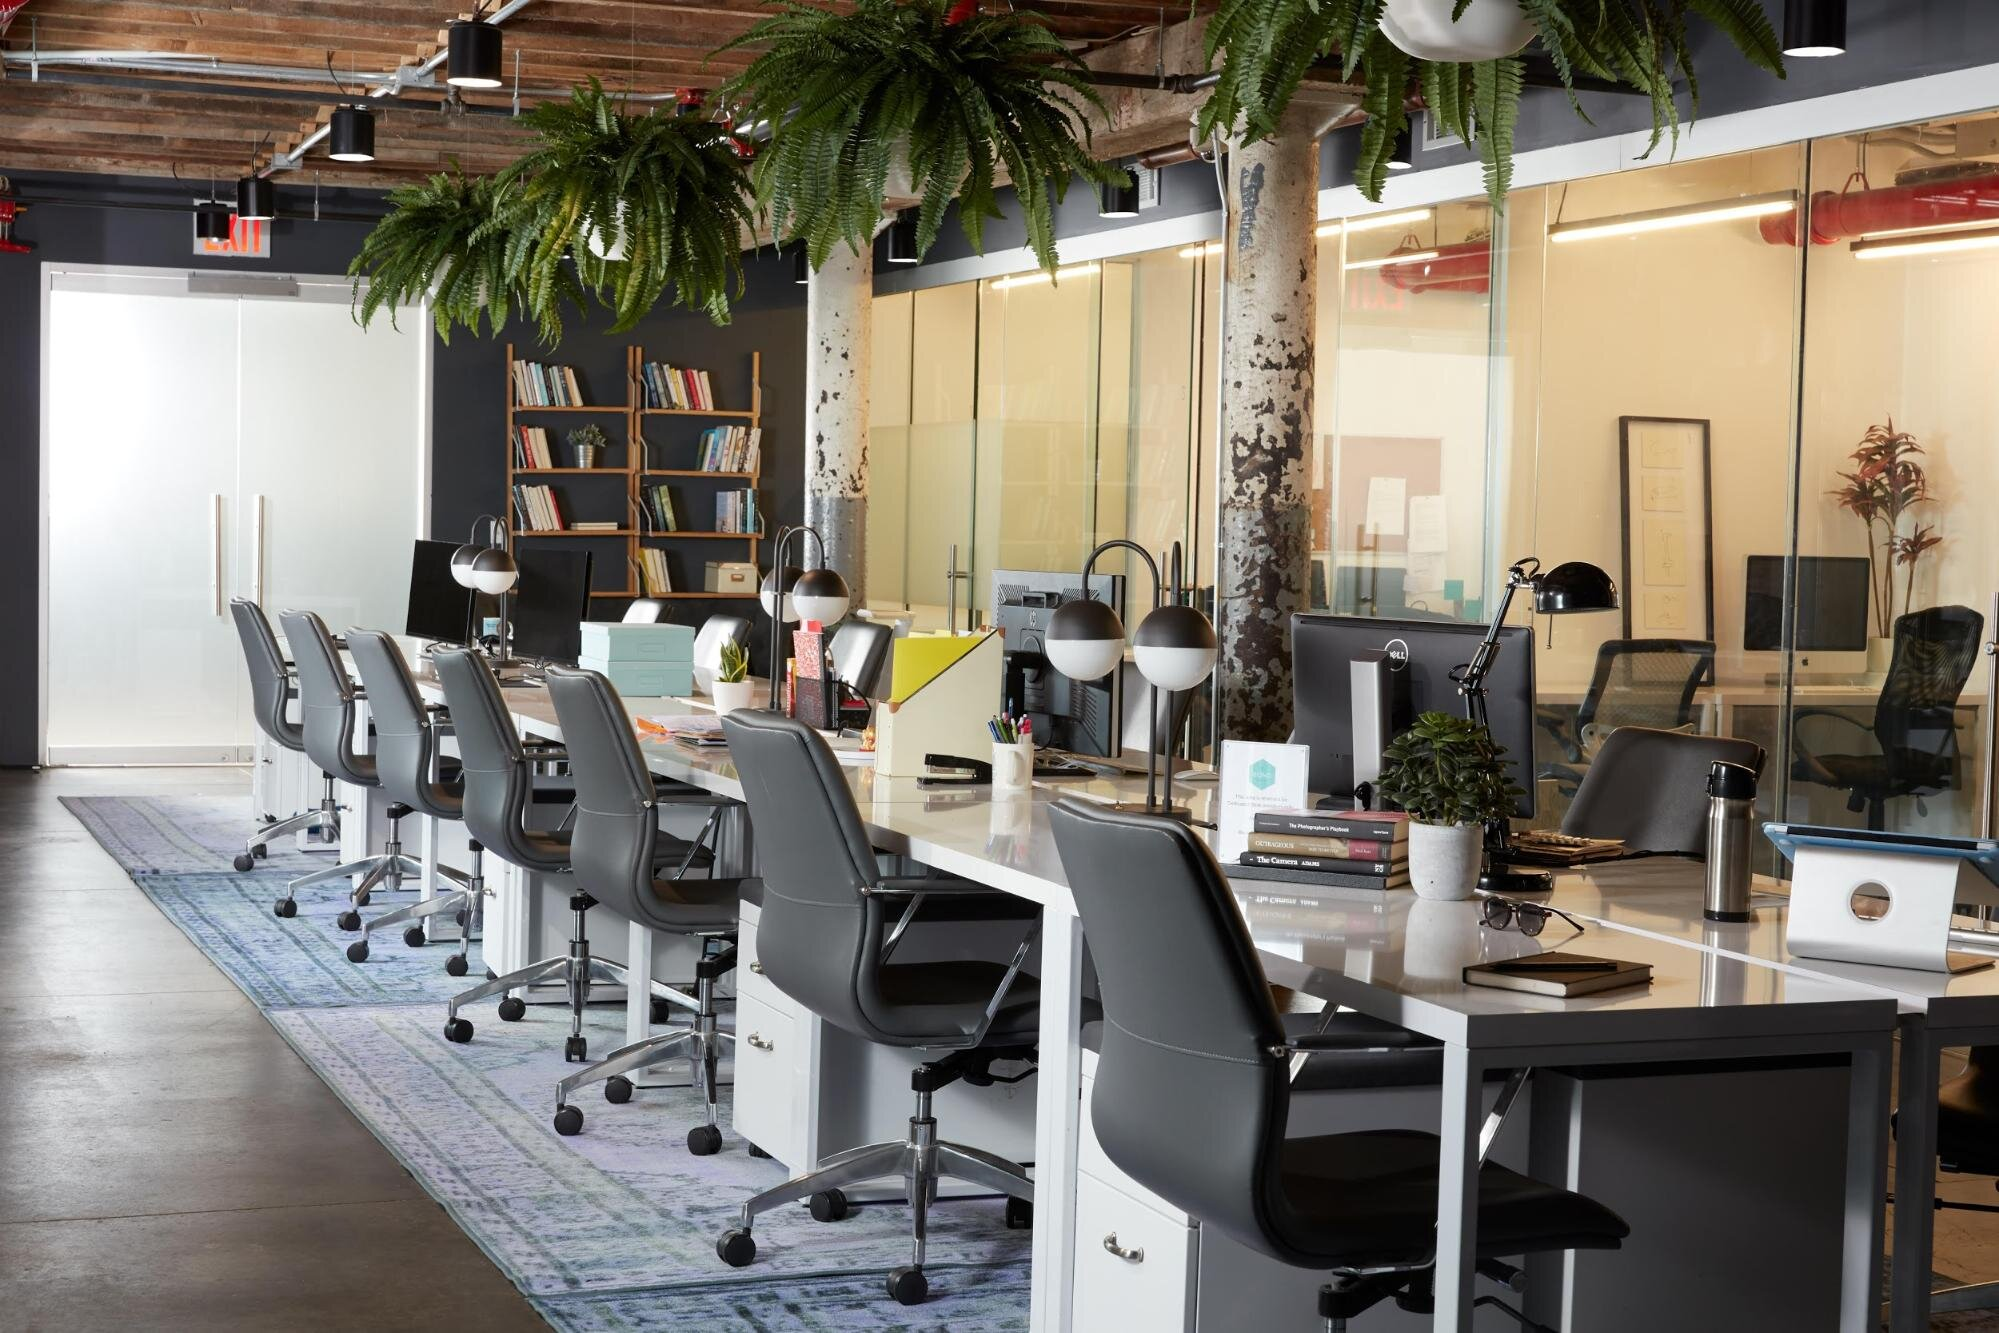 A row of office chairs at a shared desk